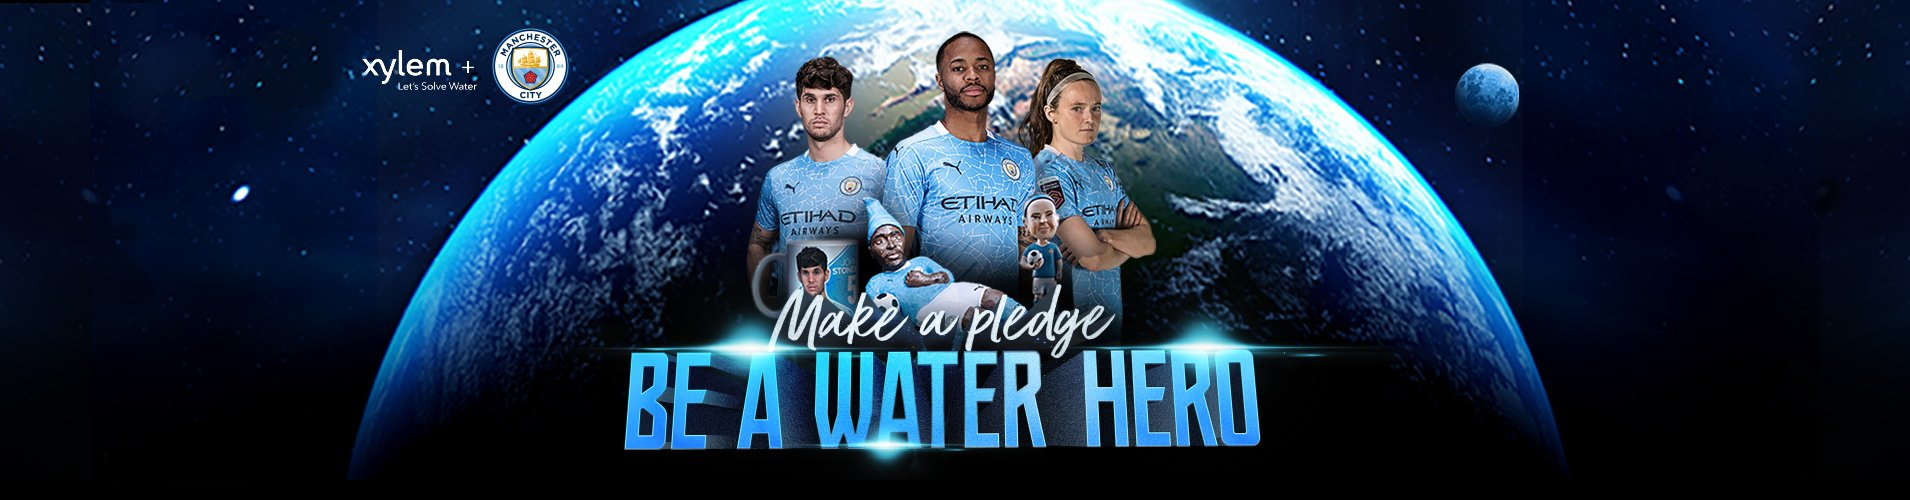 Be a Water Hero